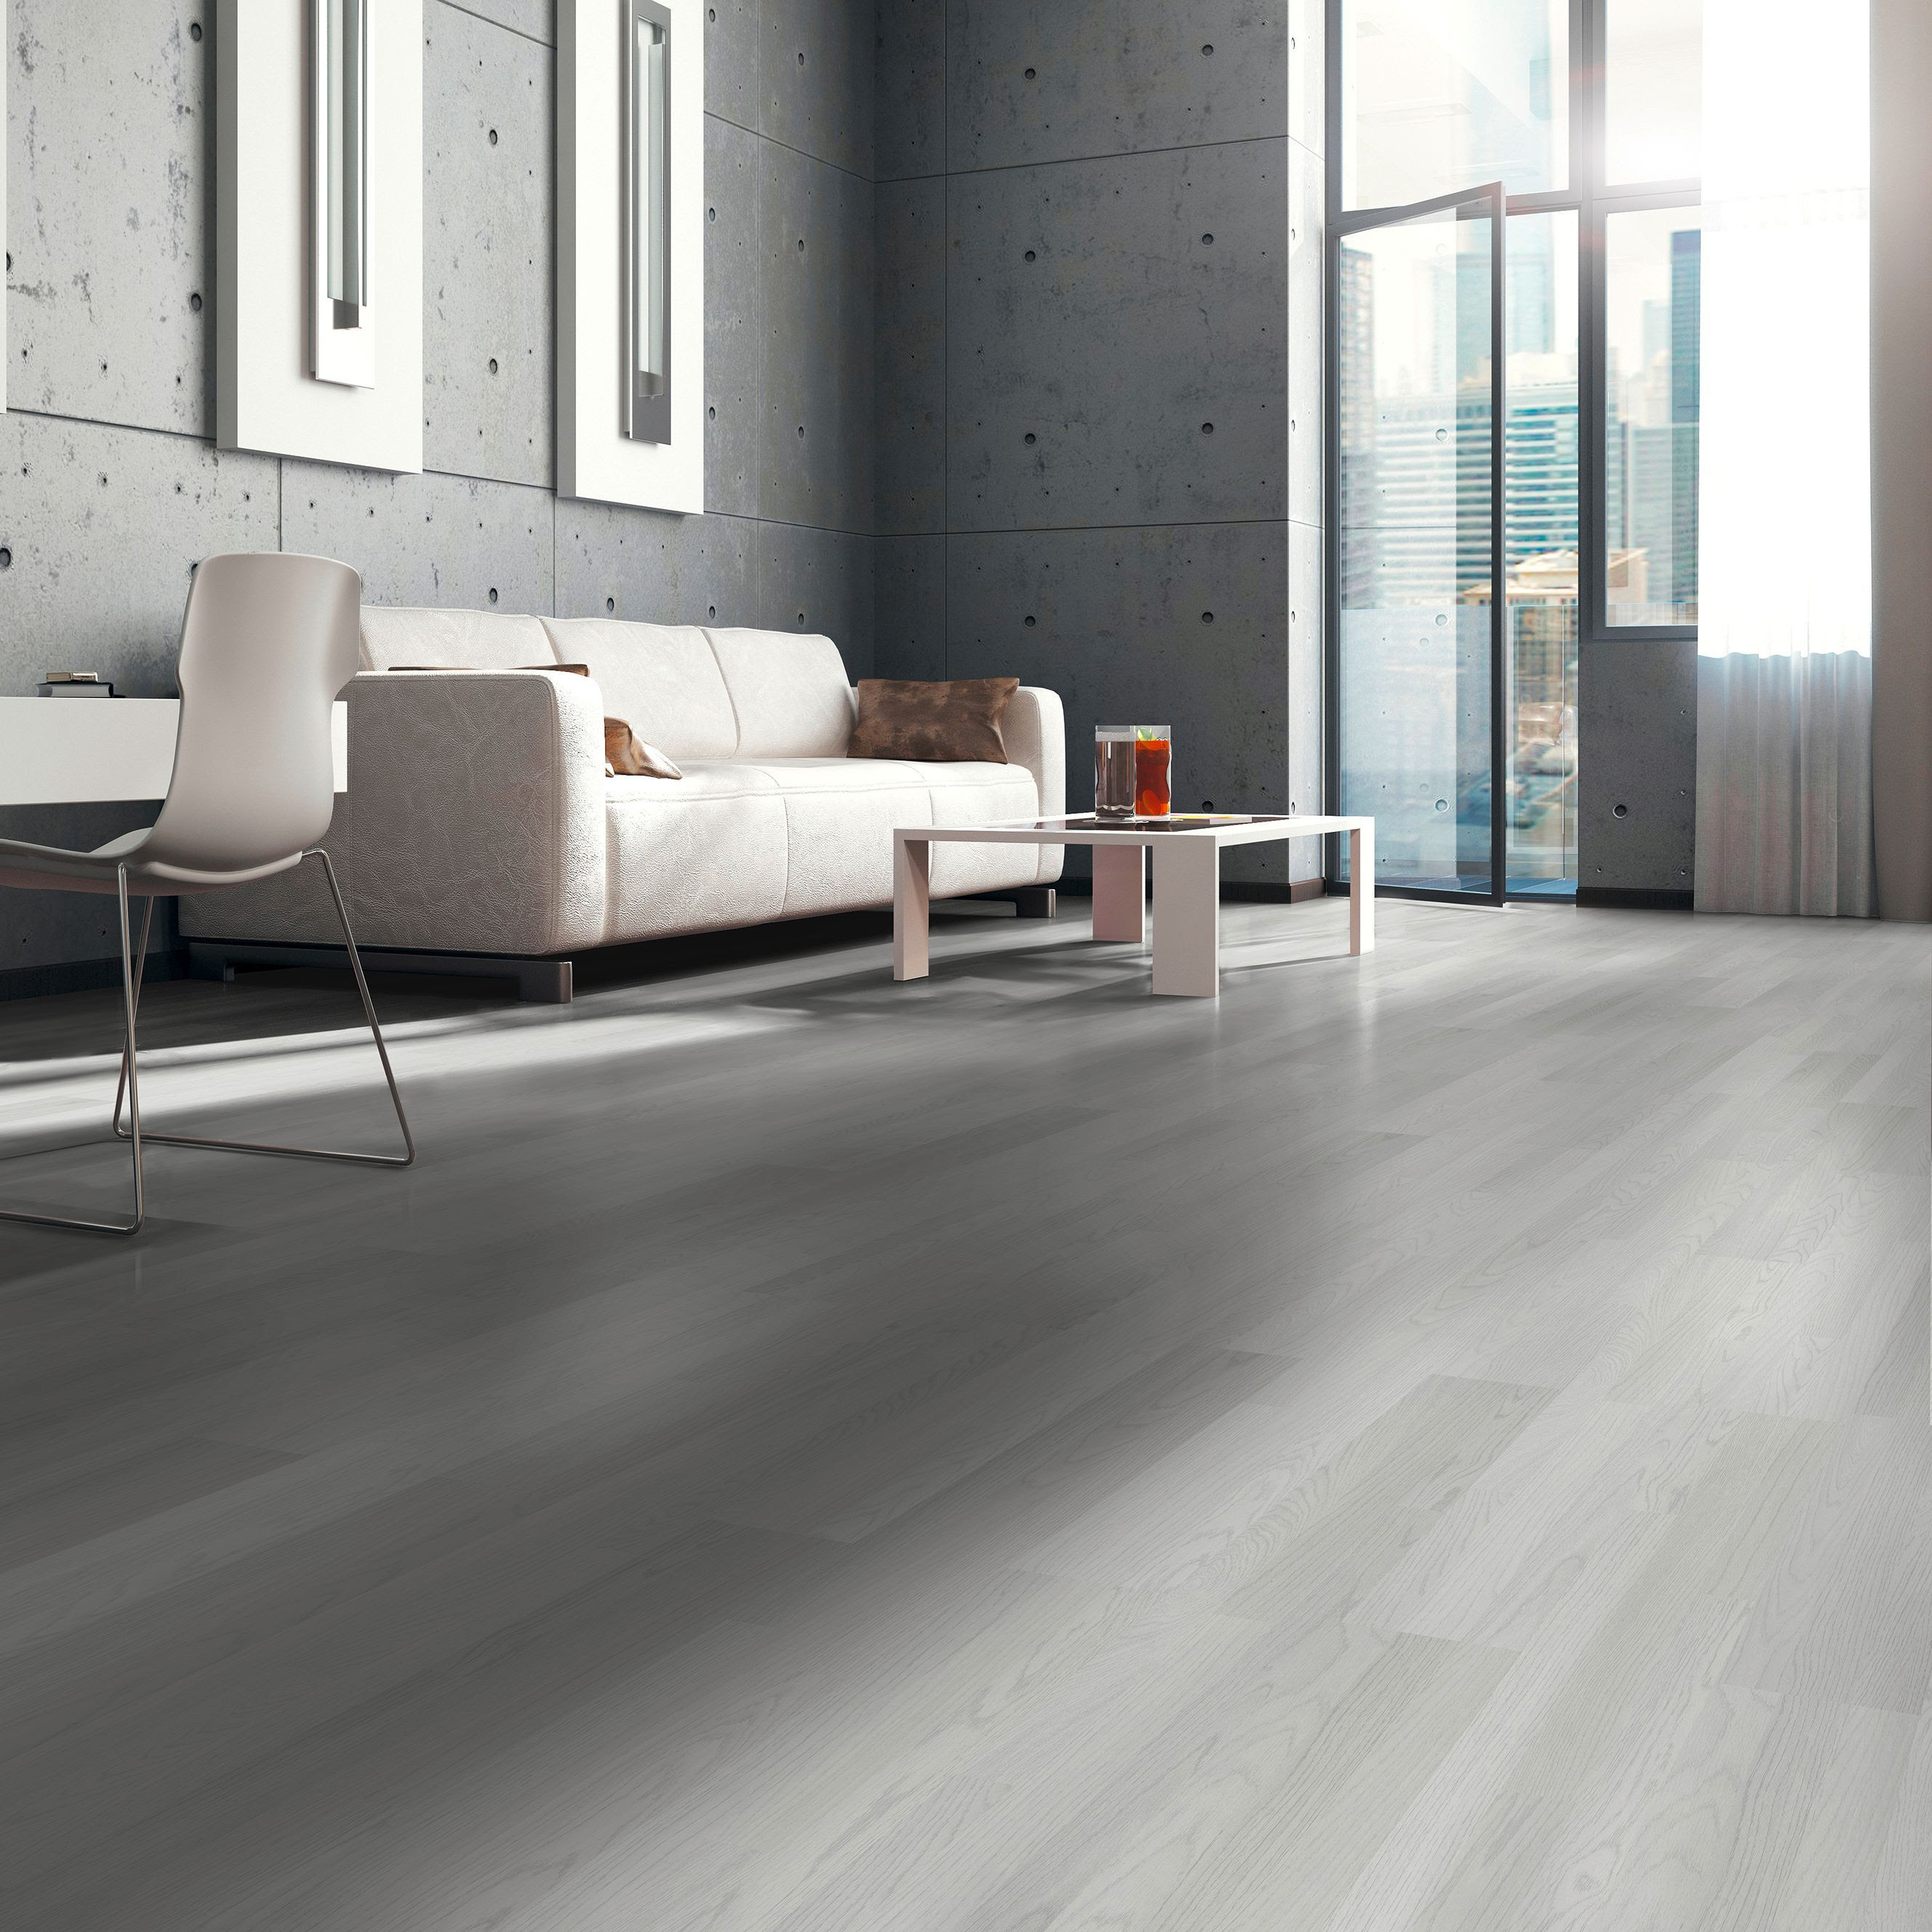 Whitewash Oak White Wood Effect Laminate Flooring 3 m² ...